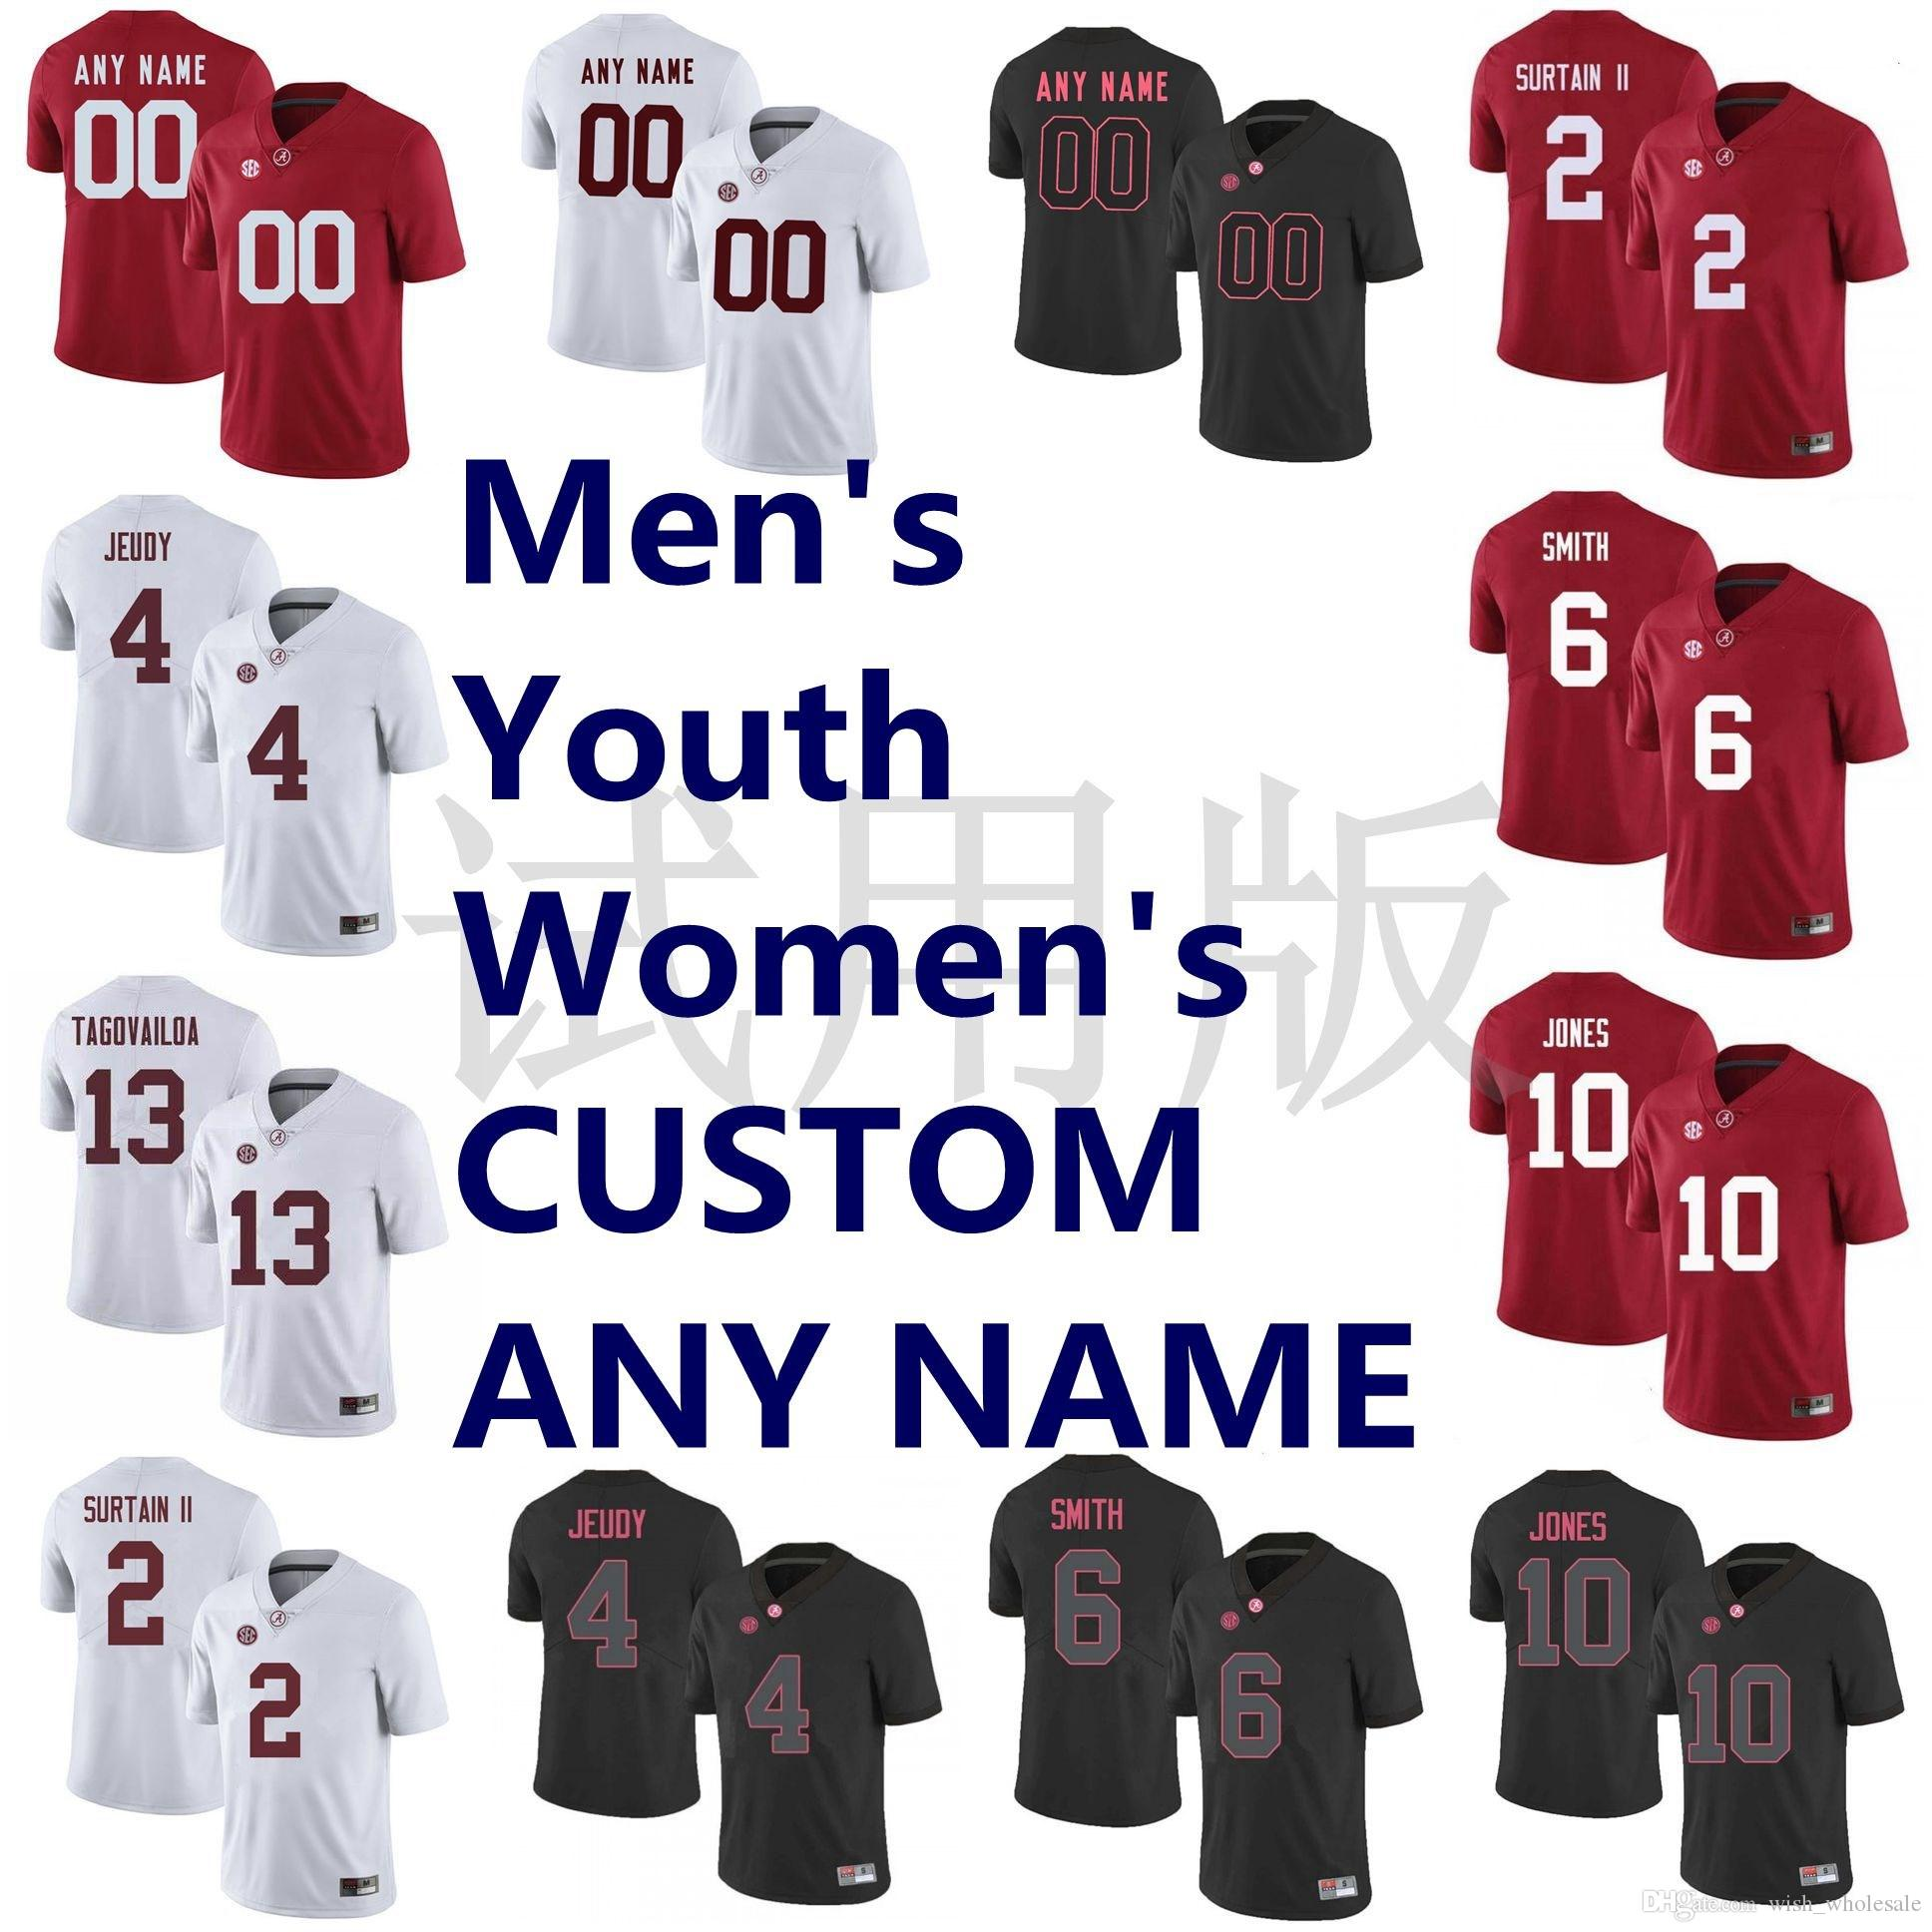 NCAA Alabama Crimson Tide jerseys Patrick Surtain II Jersey Jeudy Tagovailoa Devonta Smith Mac Jones balompié Jersey cosido personalizada